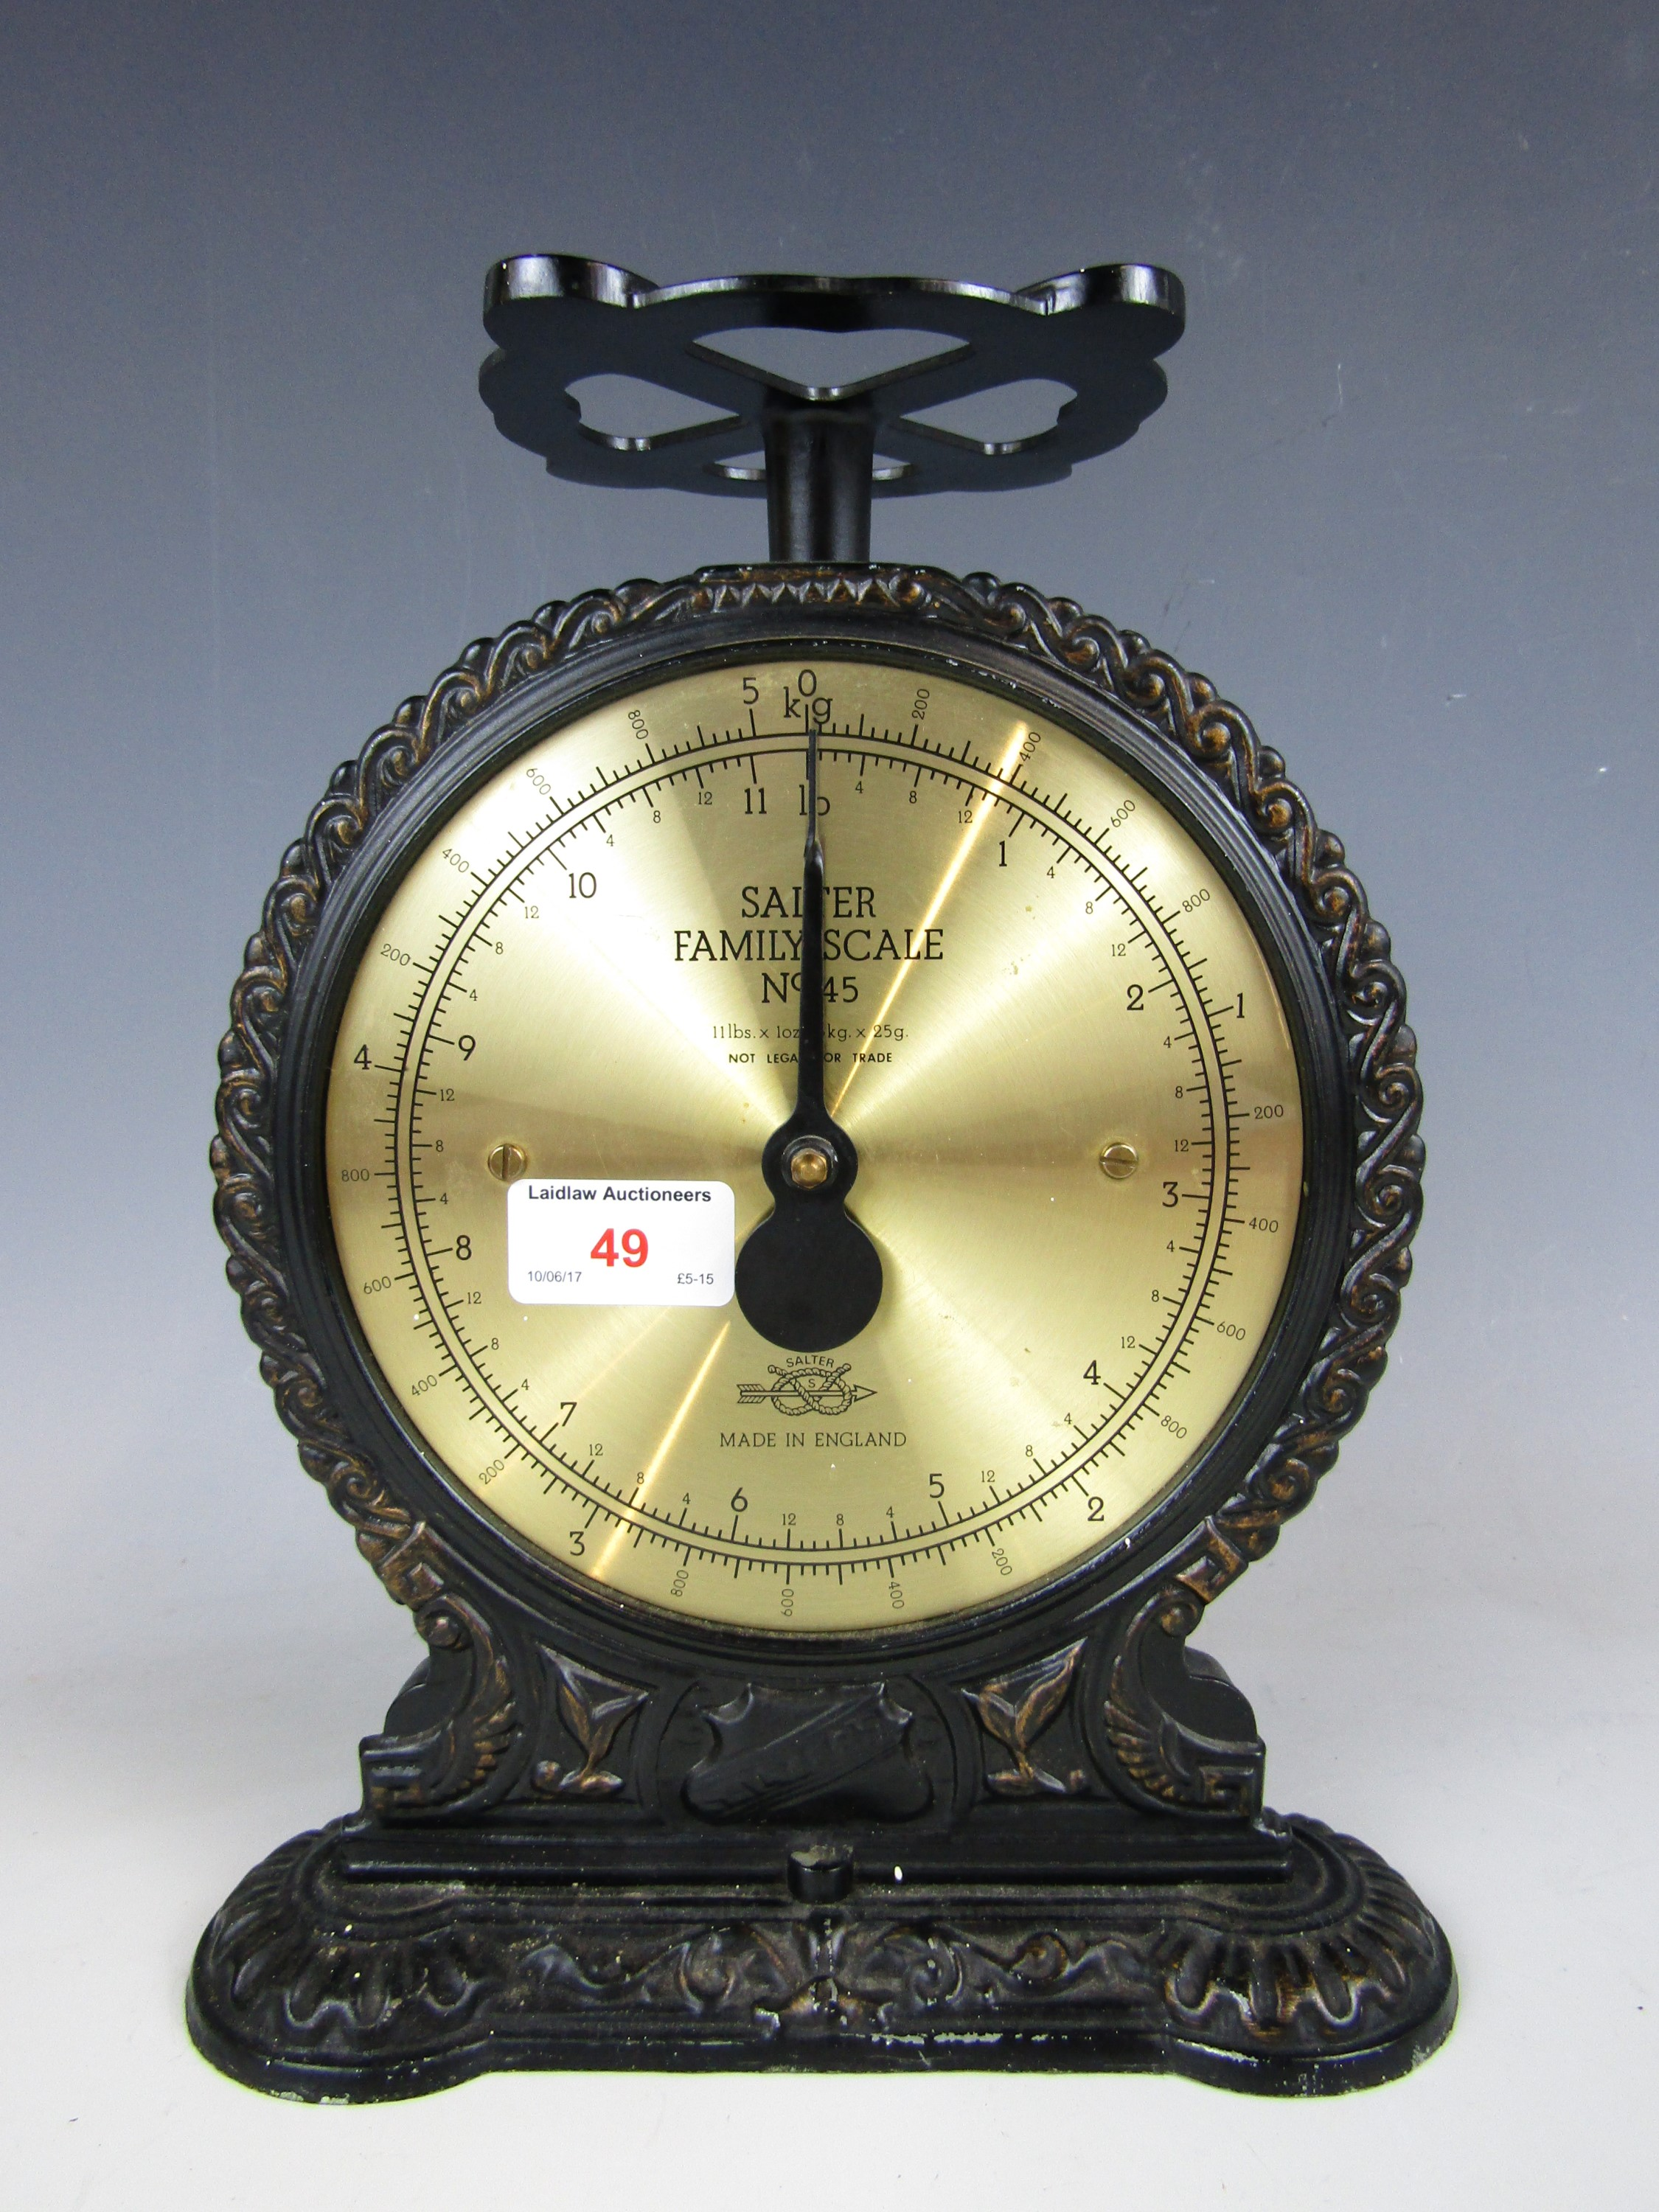 Lot 49 - A Salter cast iron Familyscale, model No. 45